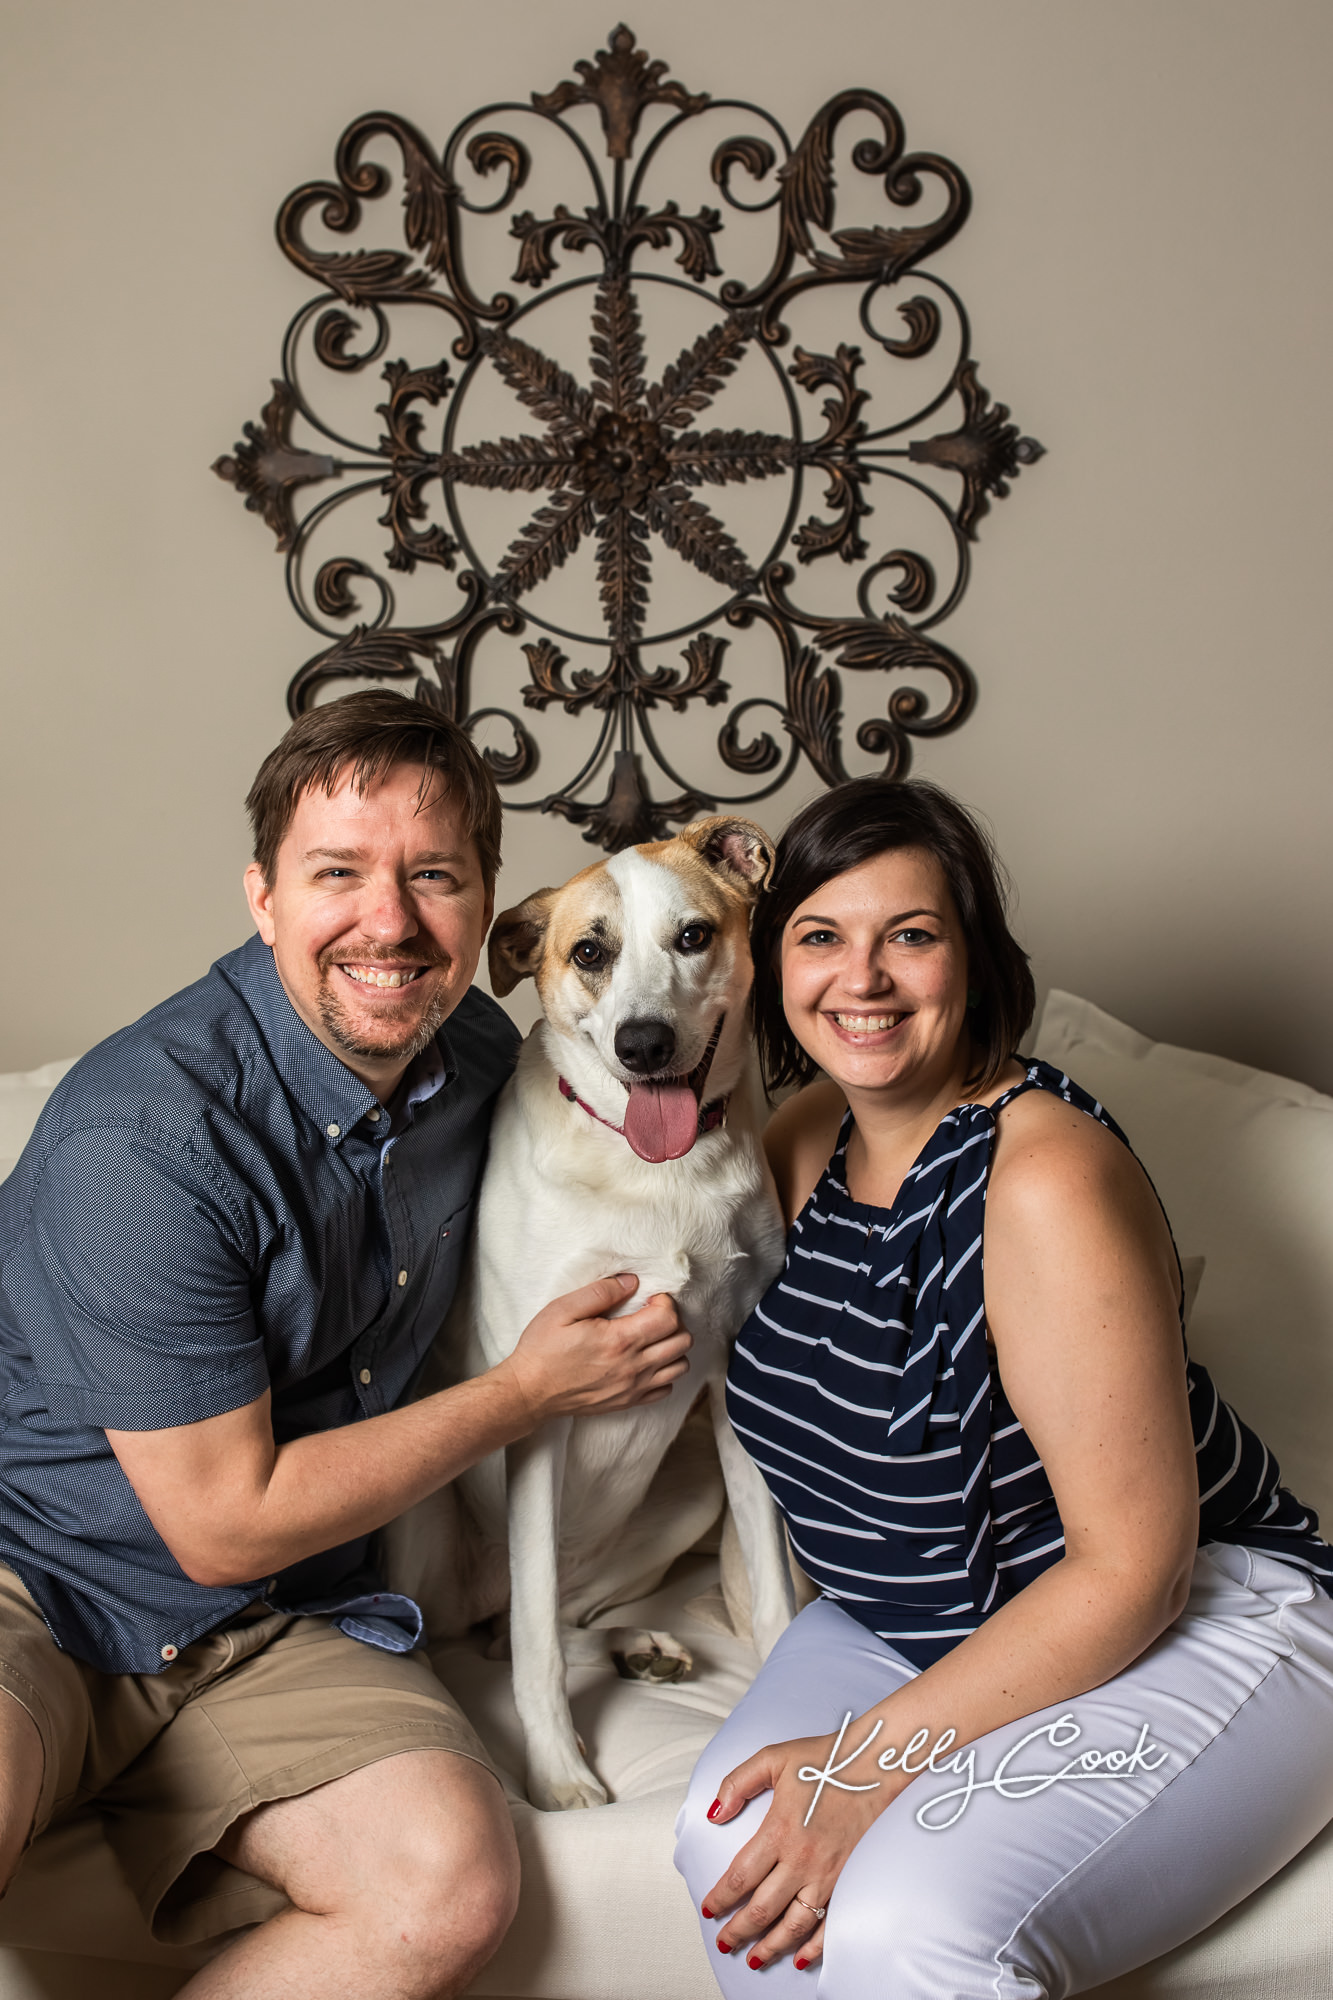 In-home lifestyle engagement photo of an engaged couple with their dog